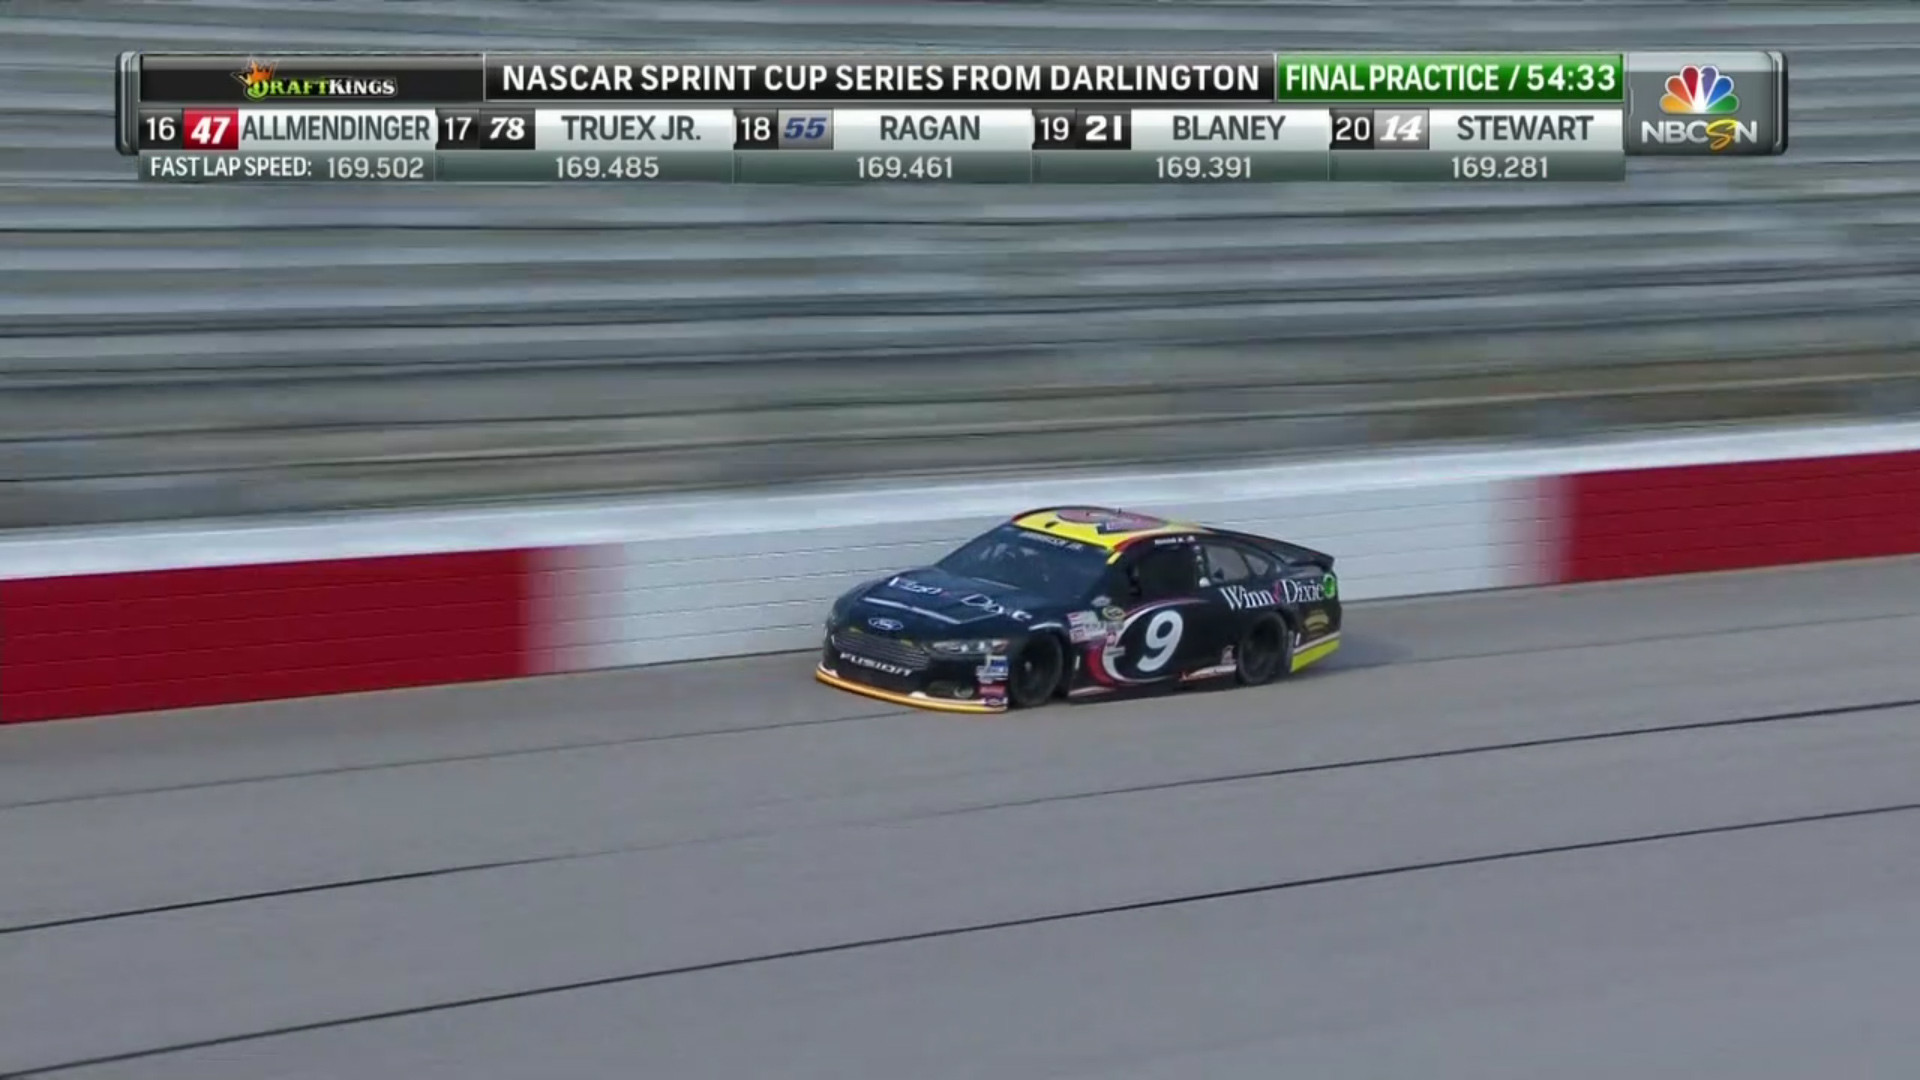 Hornish in the #9 Winn-Dixie Ford Fusion at Darlington Raceway. Screen capture from NBC's live broadcast of the Bojangles Southern 500 on September 6th, 2015. (Credit: NBC Sports)